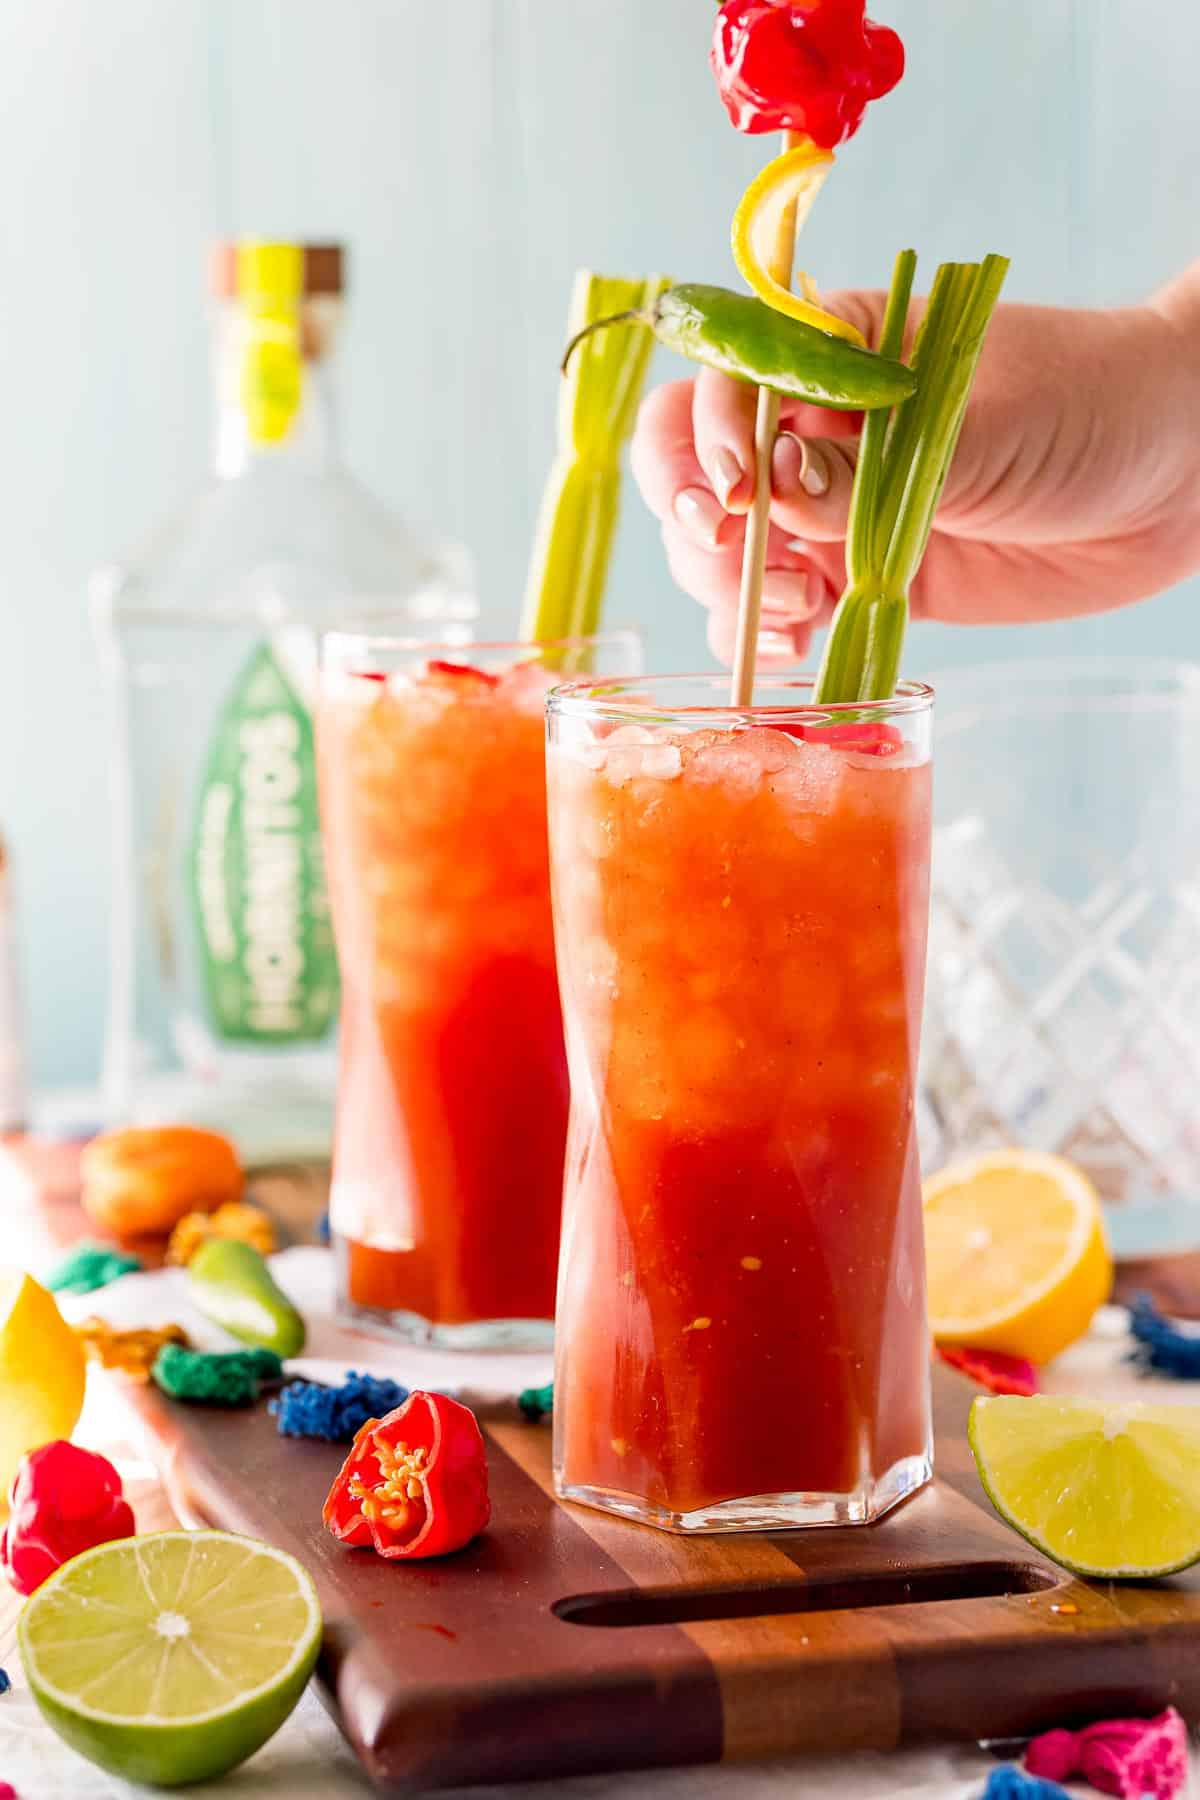 Garnishes being added to a bloody mary style drink.